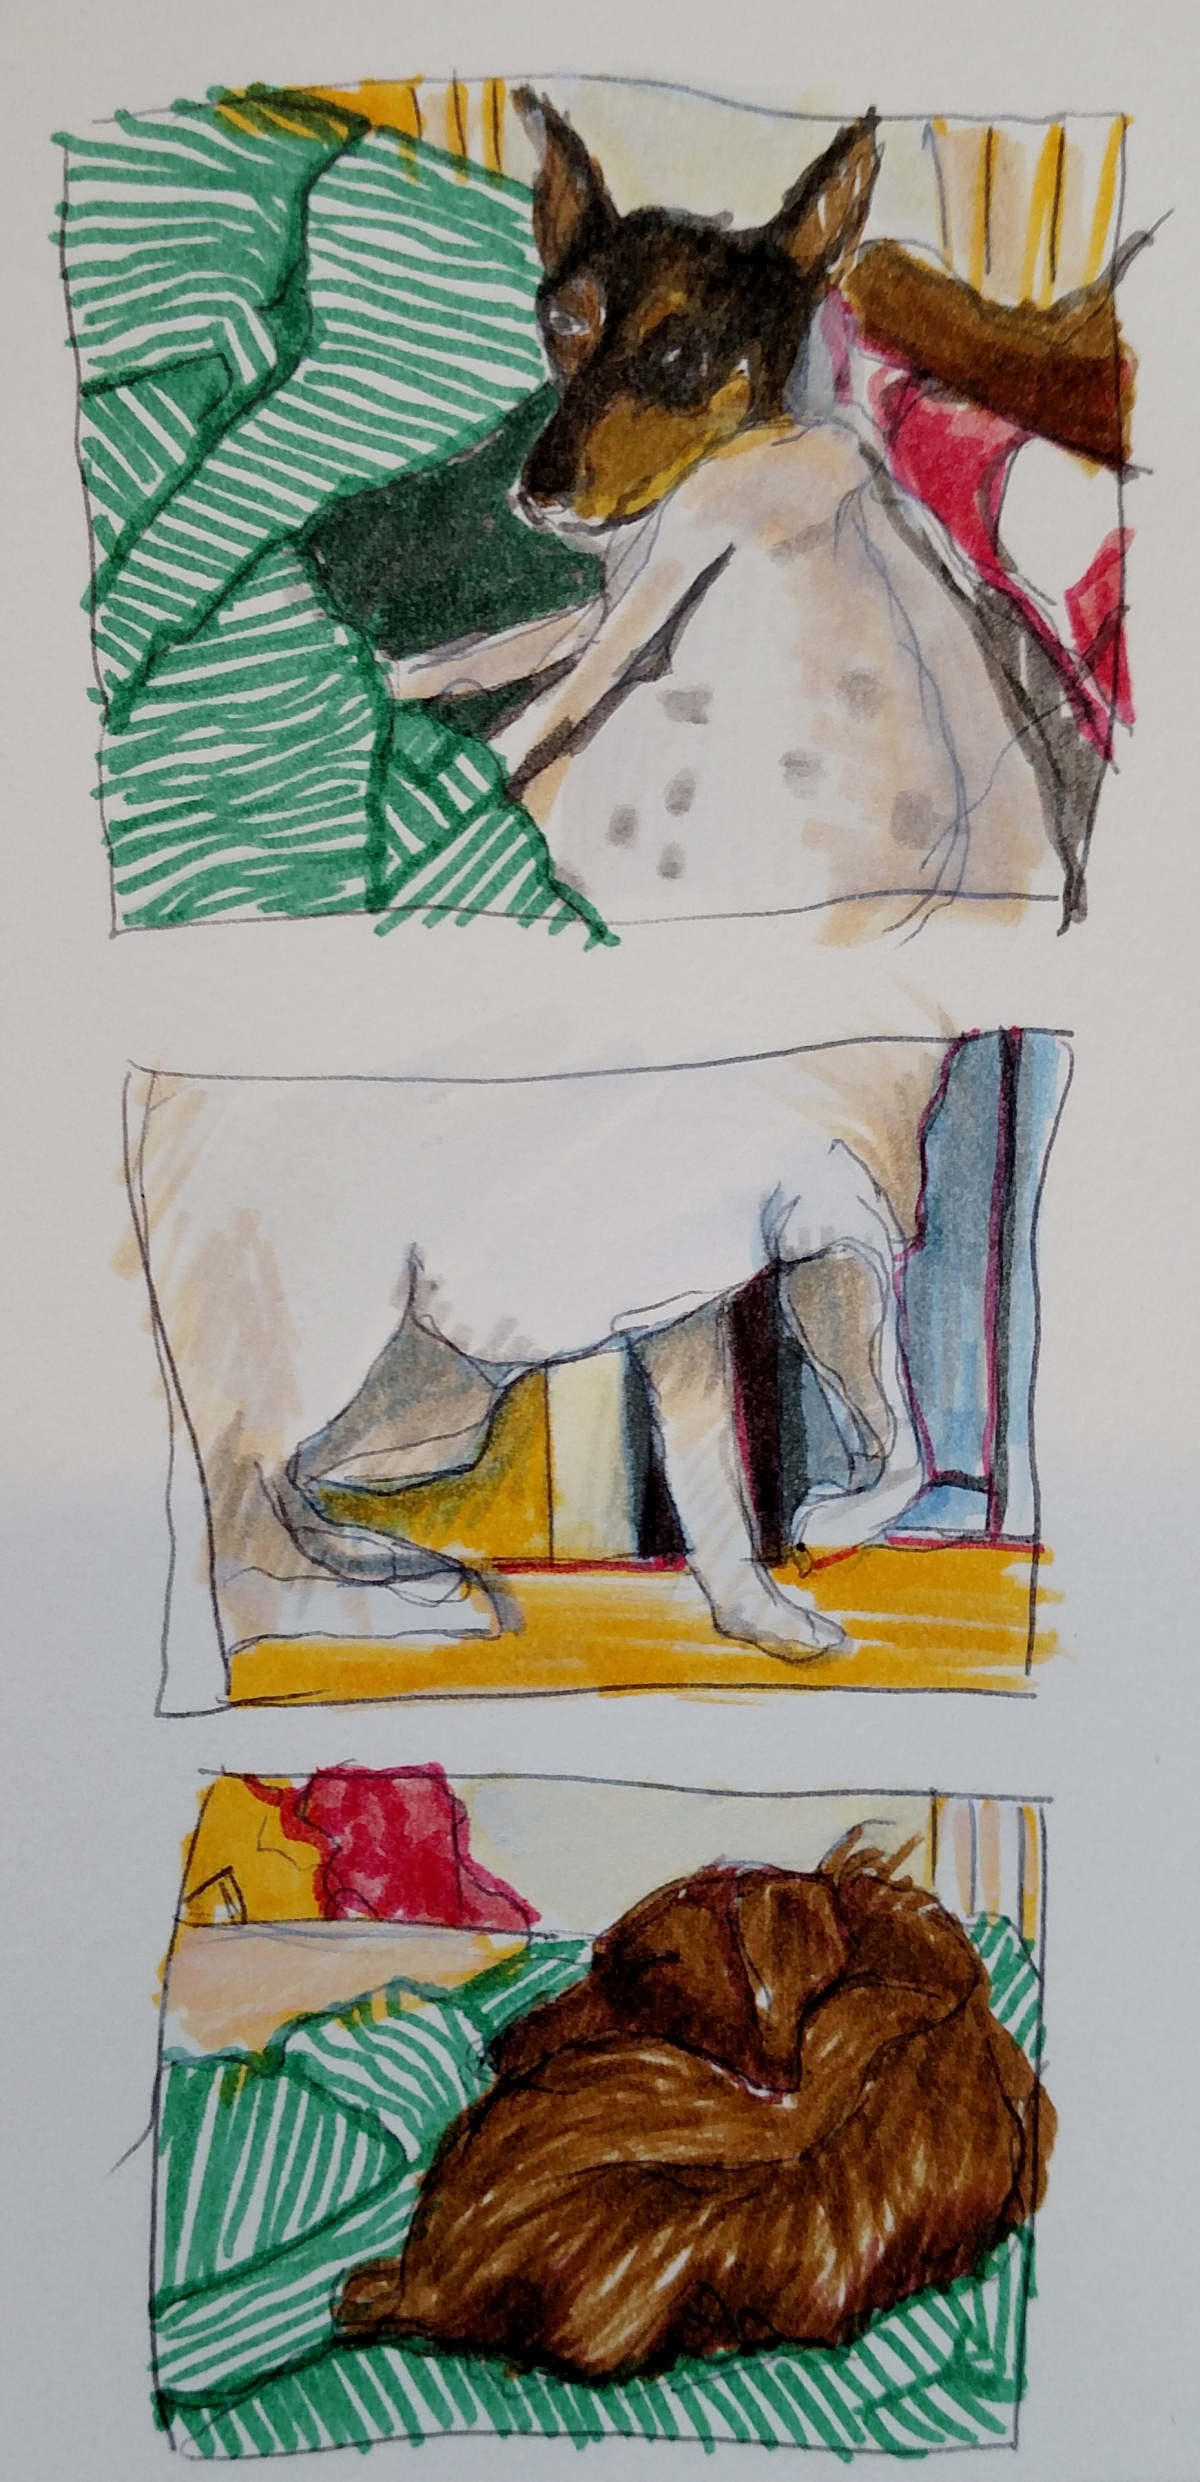 3 drawings of rescue dogs, including toy fox terrier, American eskimo and dachshund mixes